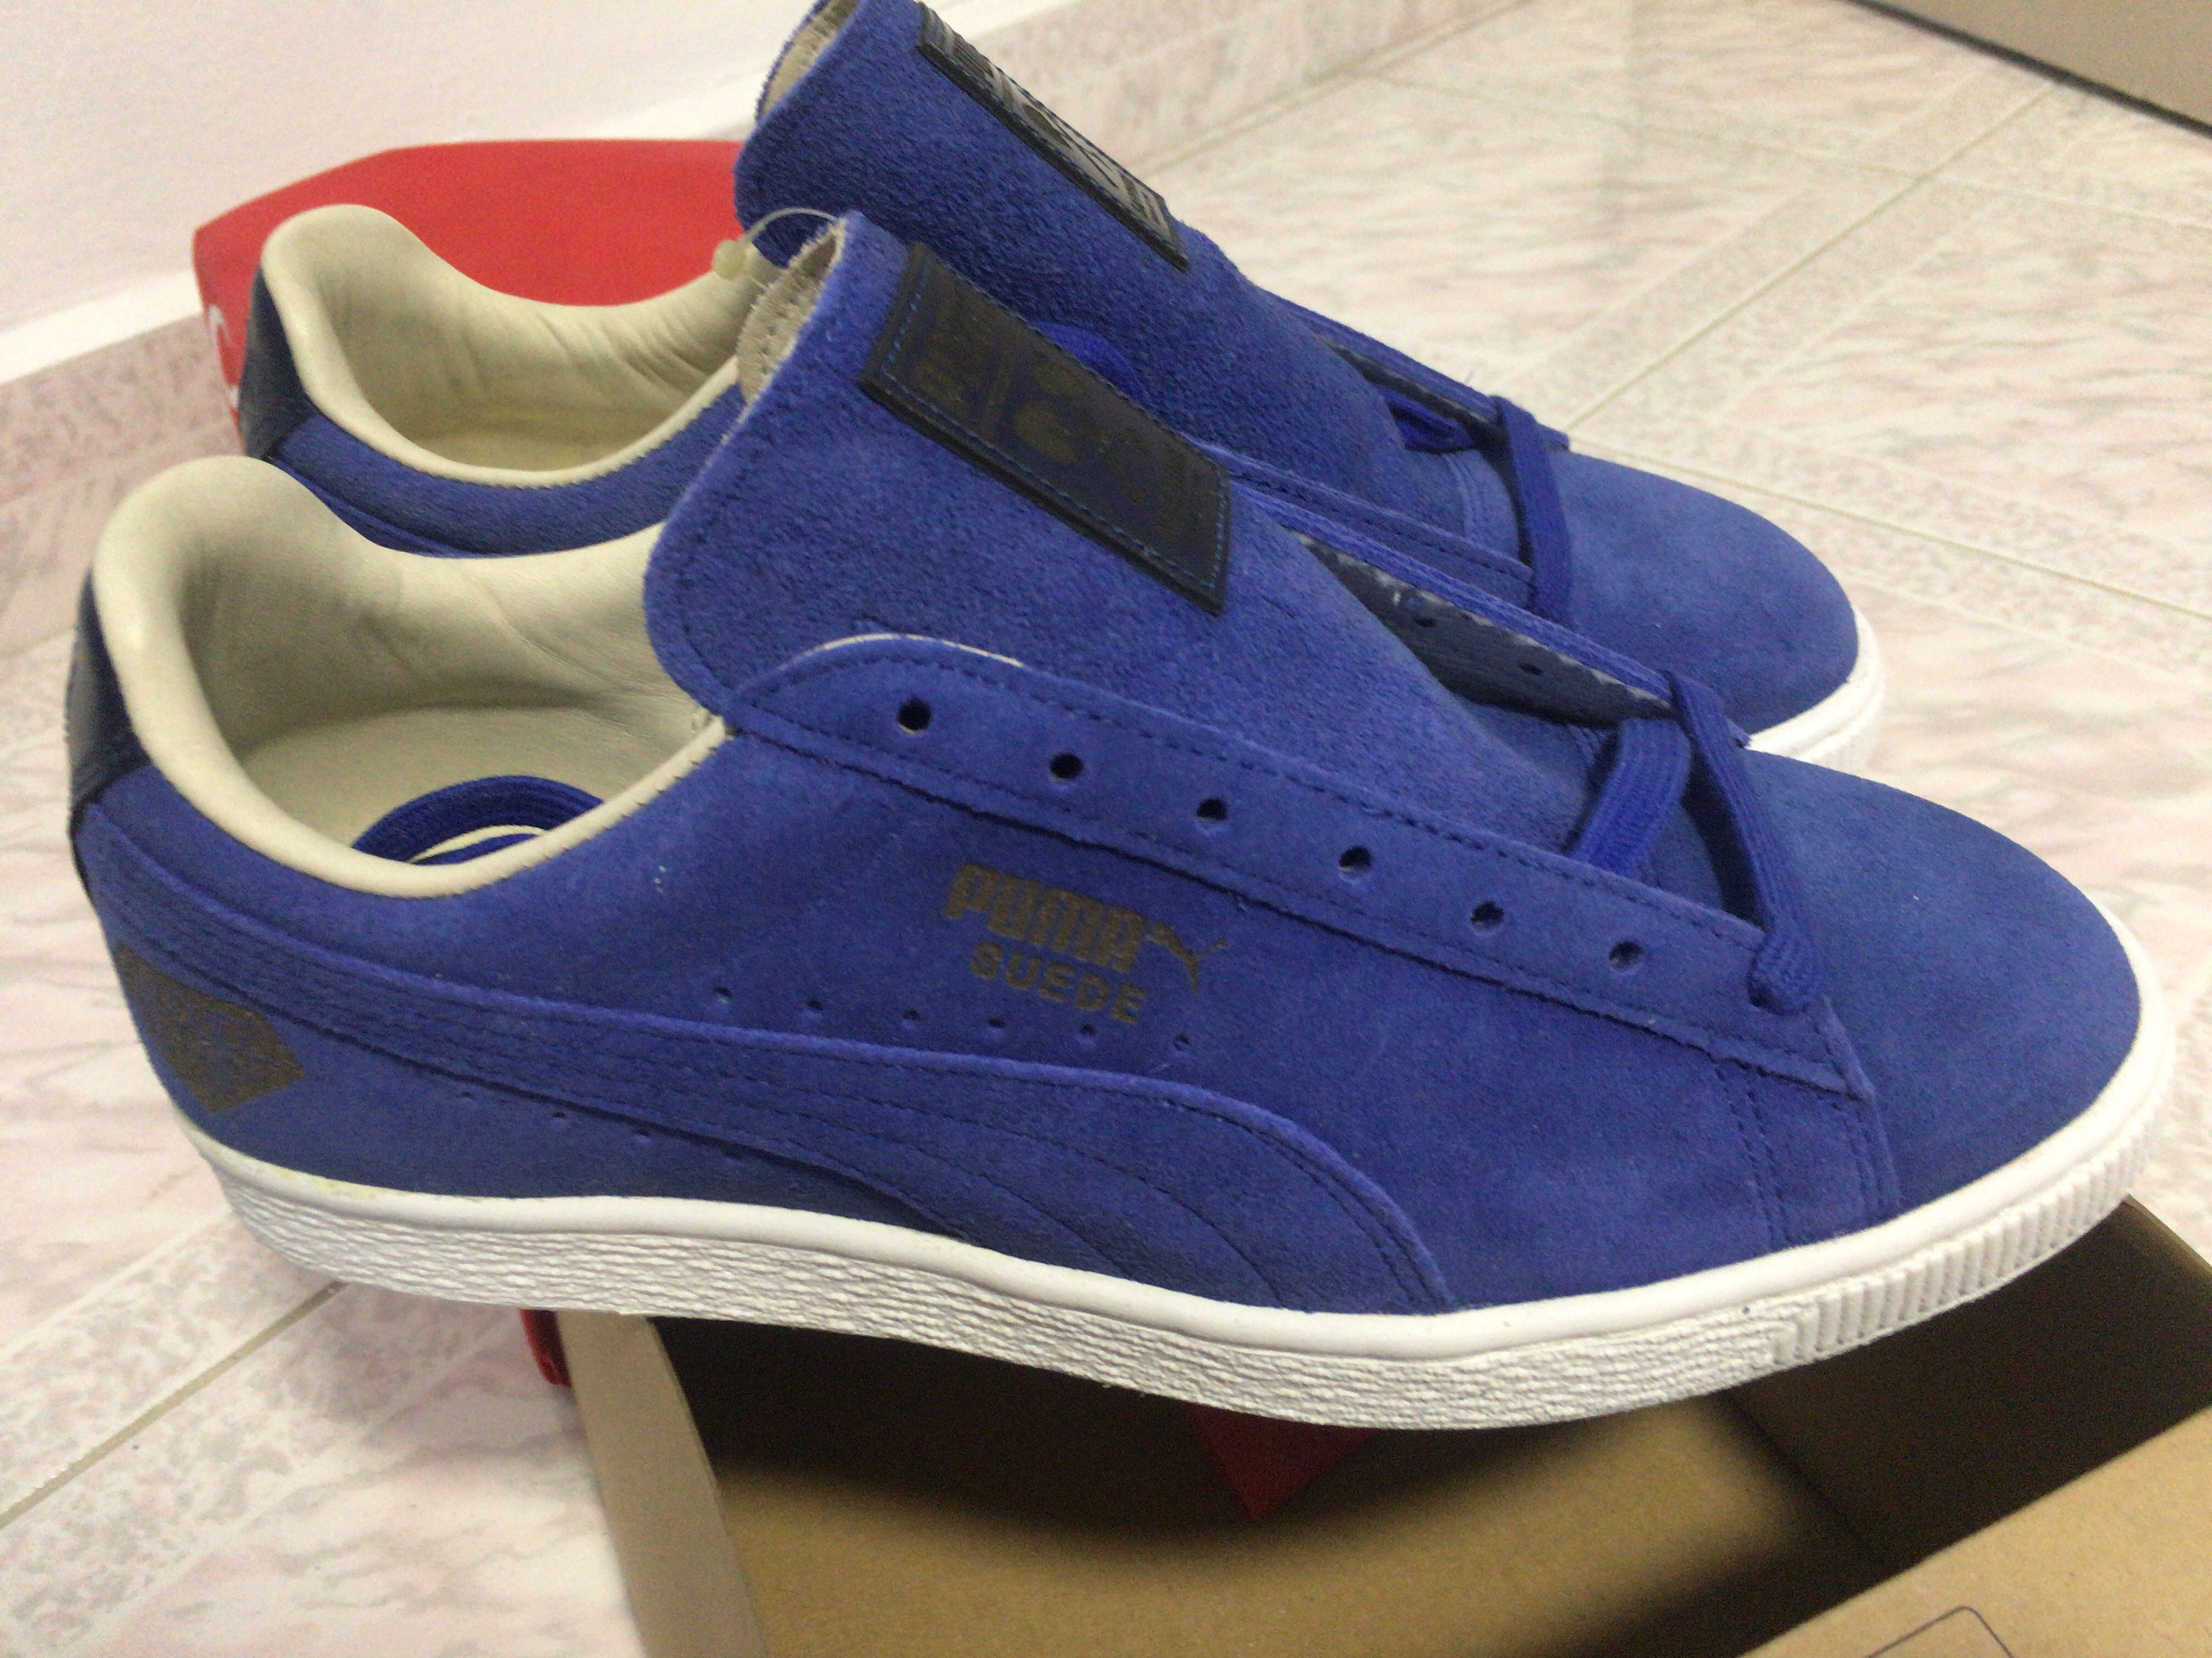 Made in Japan Puma Suede Sapphire - limited edition 4e27a254c